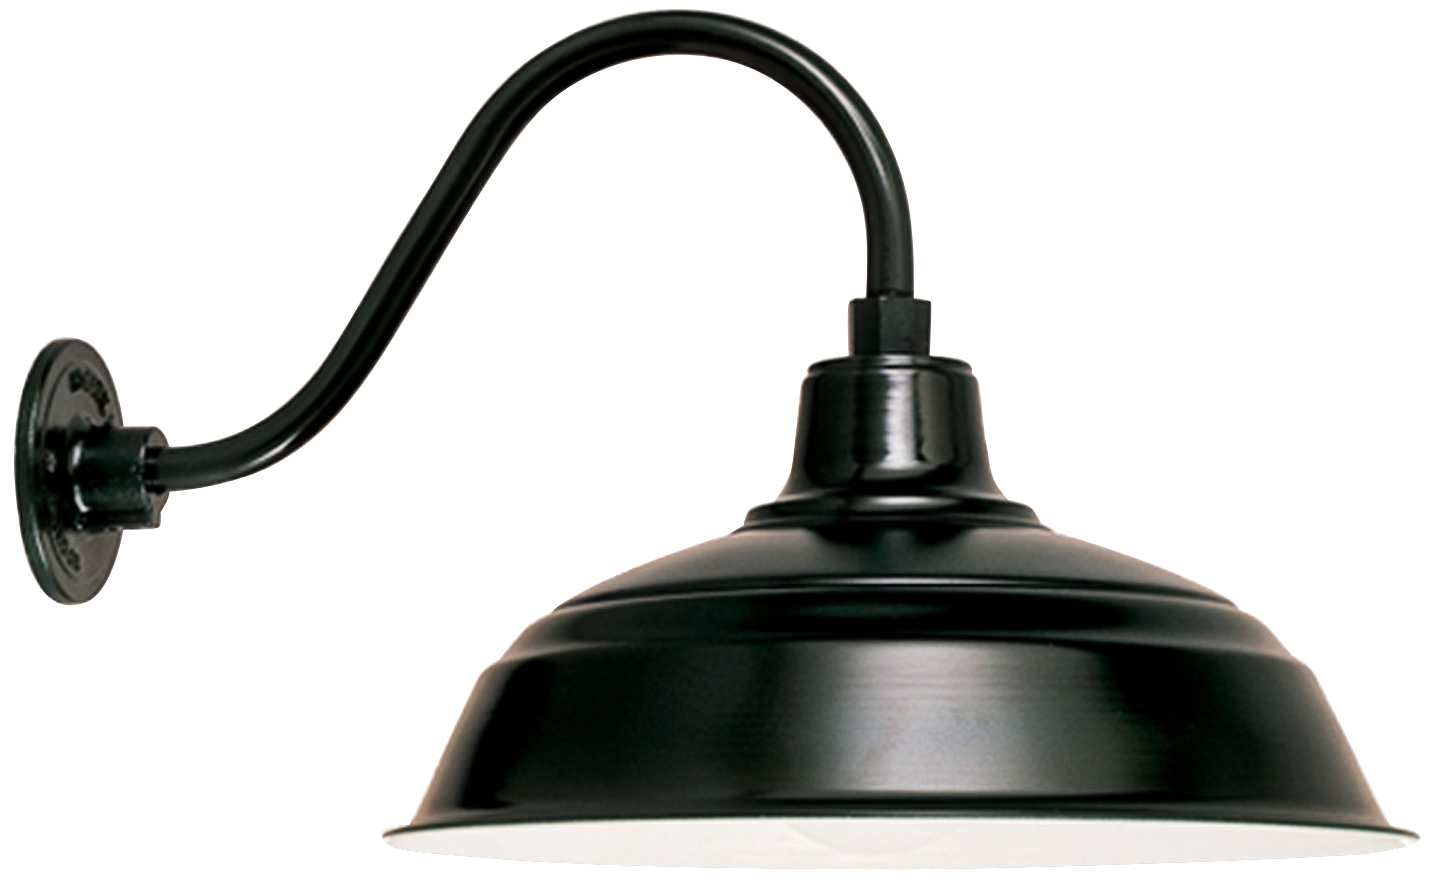 warehouse 9 1 2 h barn black gooseneck outdoor wall light style